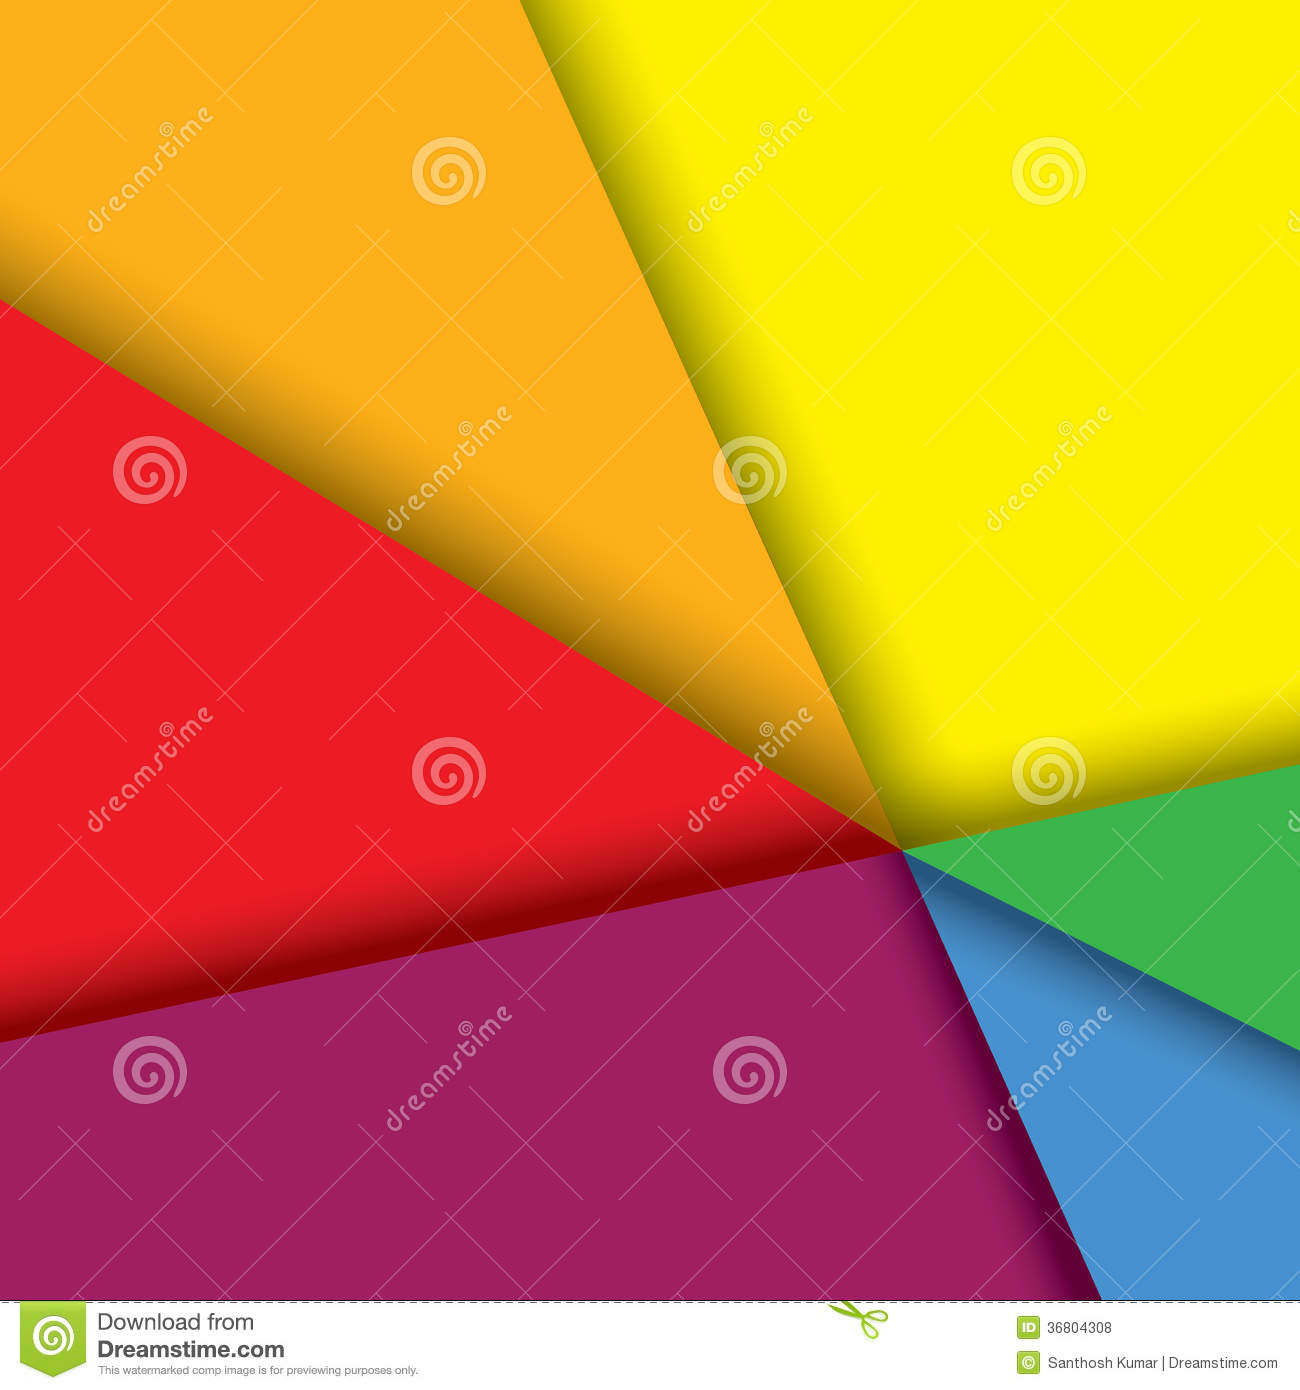 Colorful paper background with lines & shadows - v